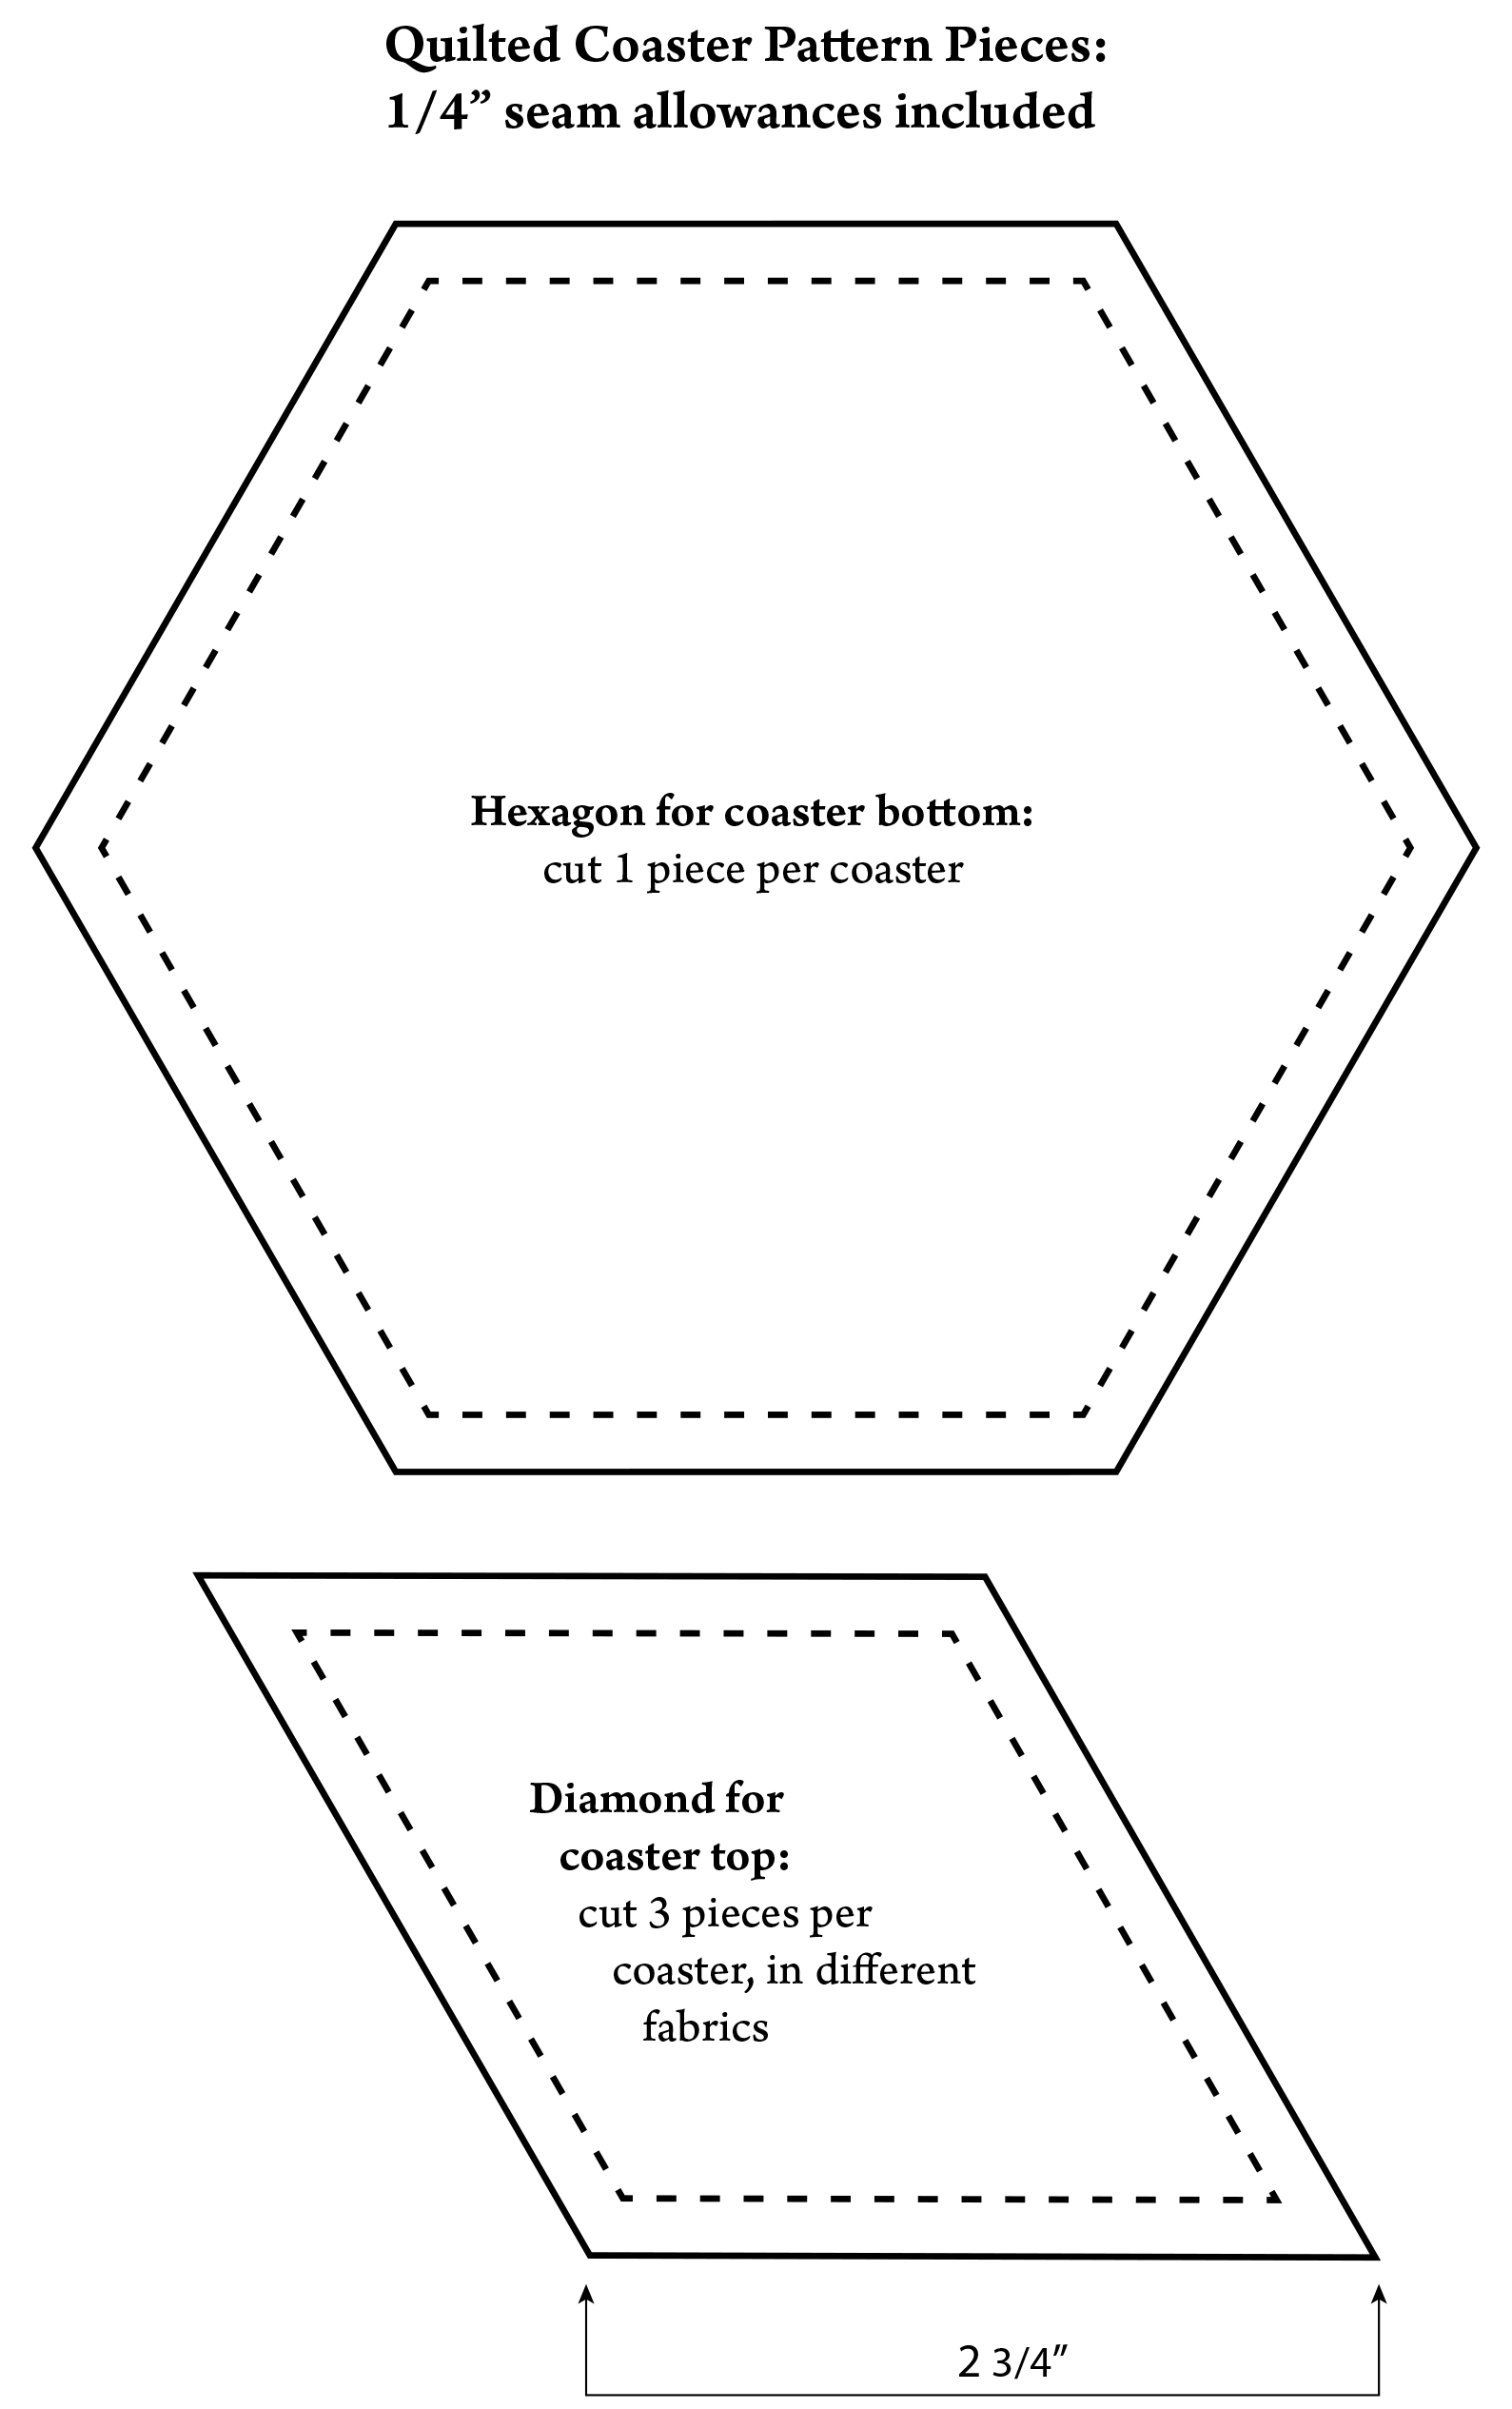 pattern pieces for simple hexagonal quilted coasters